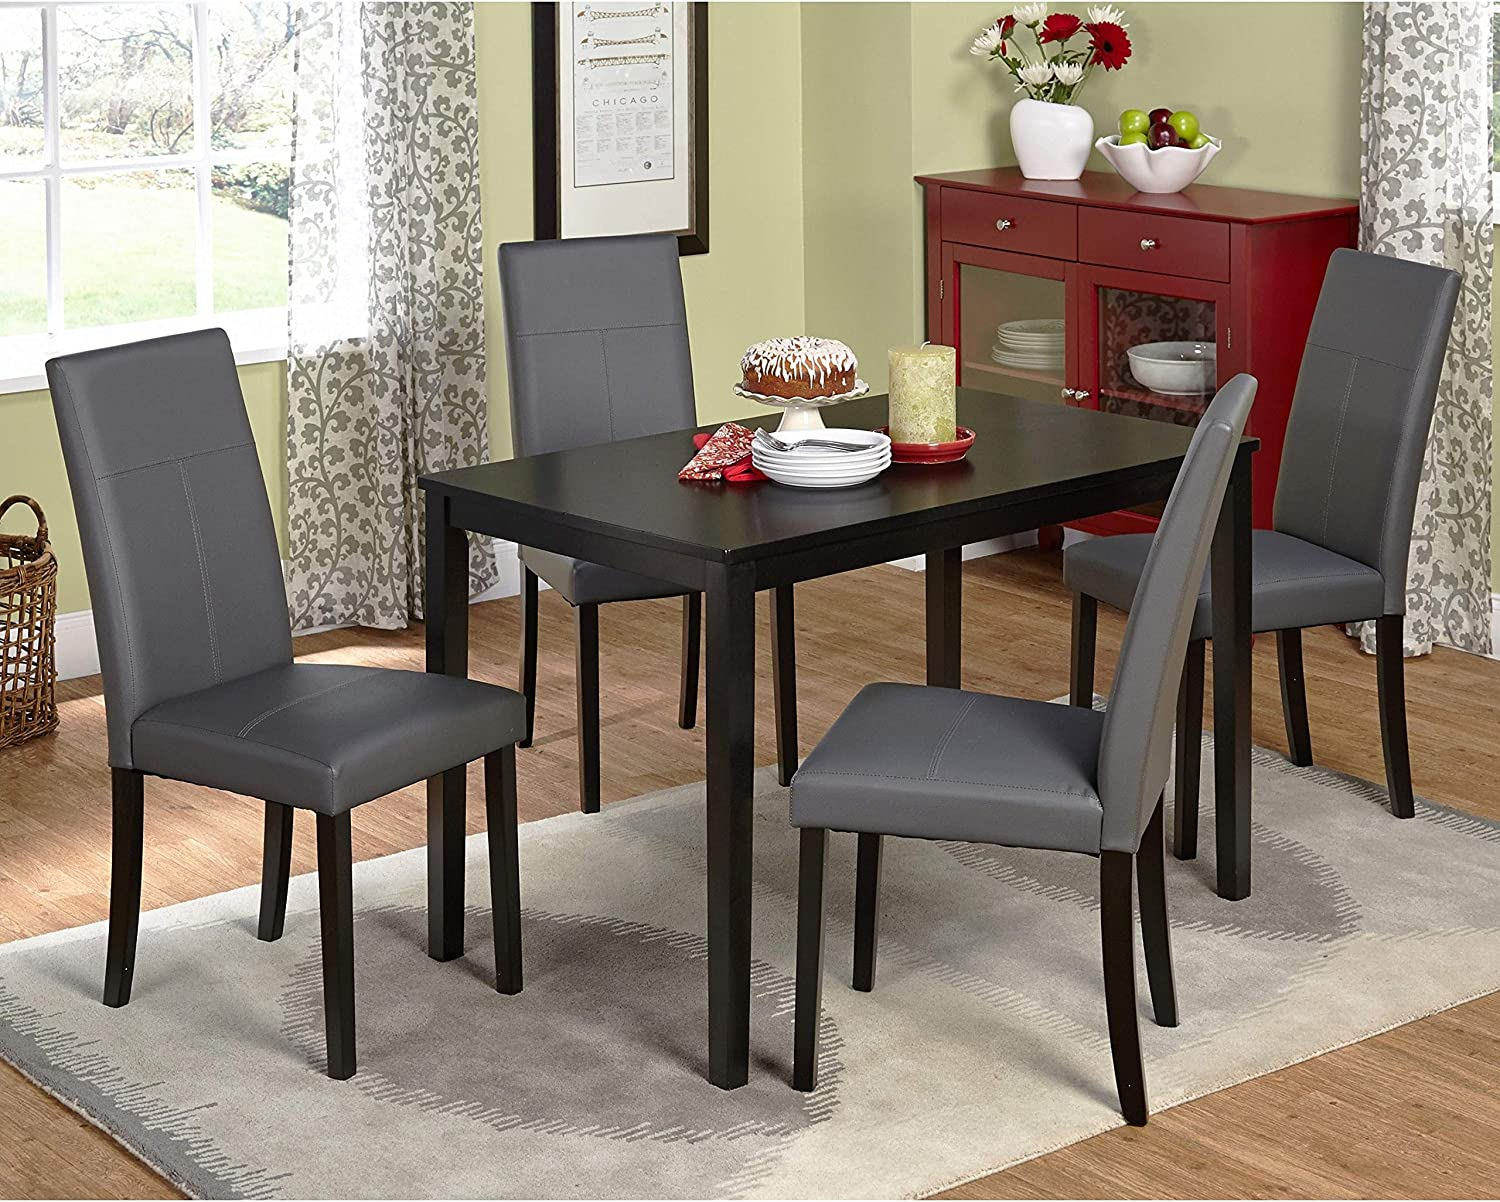 Dining Tables Set This 5 Piece Dining Room Furniture Set Is Elegant for Any Dining Room Area, Dining Chairs Are Very Comfortable and Set Is Made From Solid Wood.